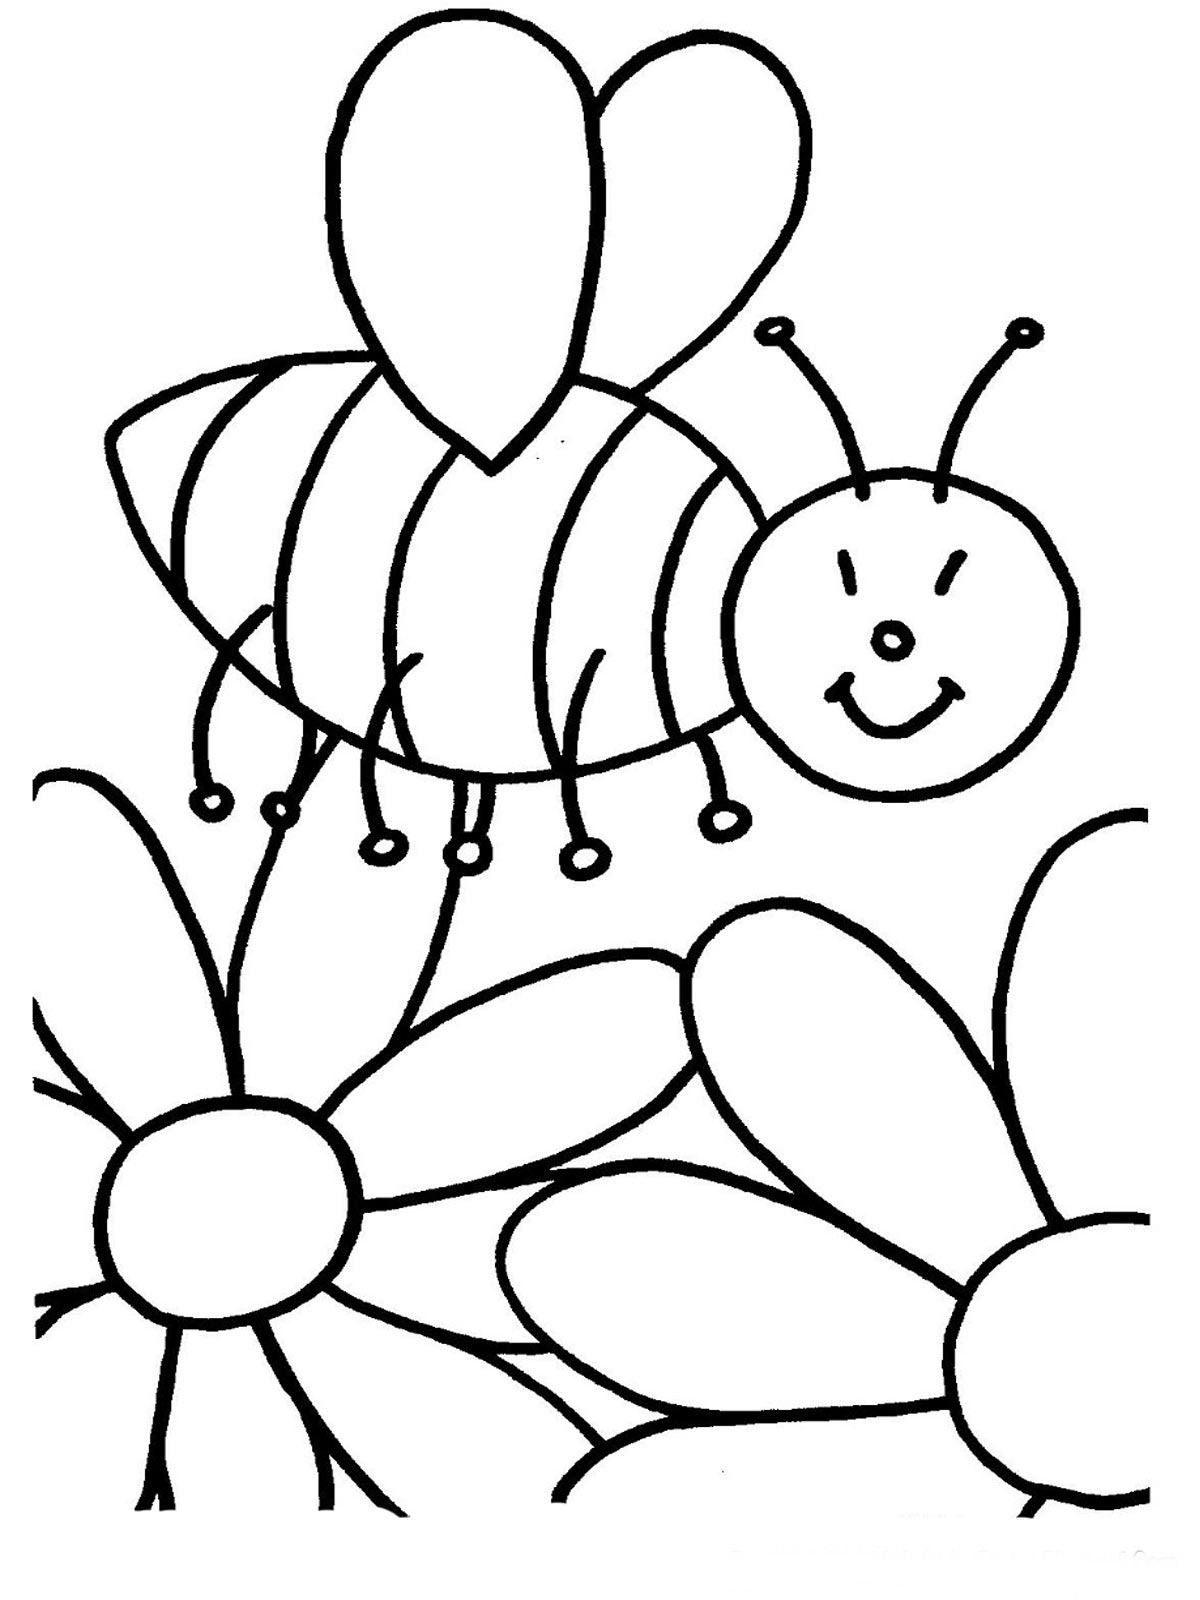 Free printable coloring pages of spring - Flower Wallpaper Bees Coloring Pages Realistic Realistic Coloring Pages